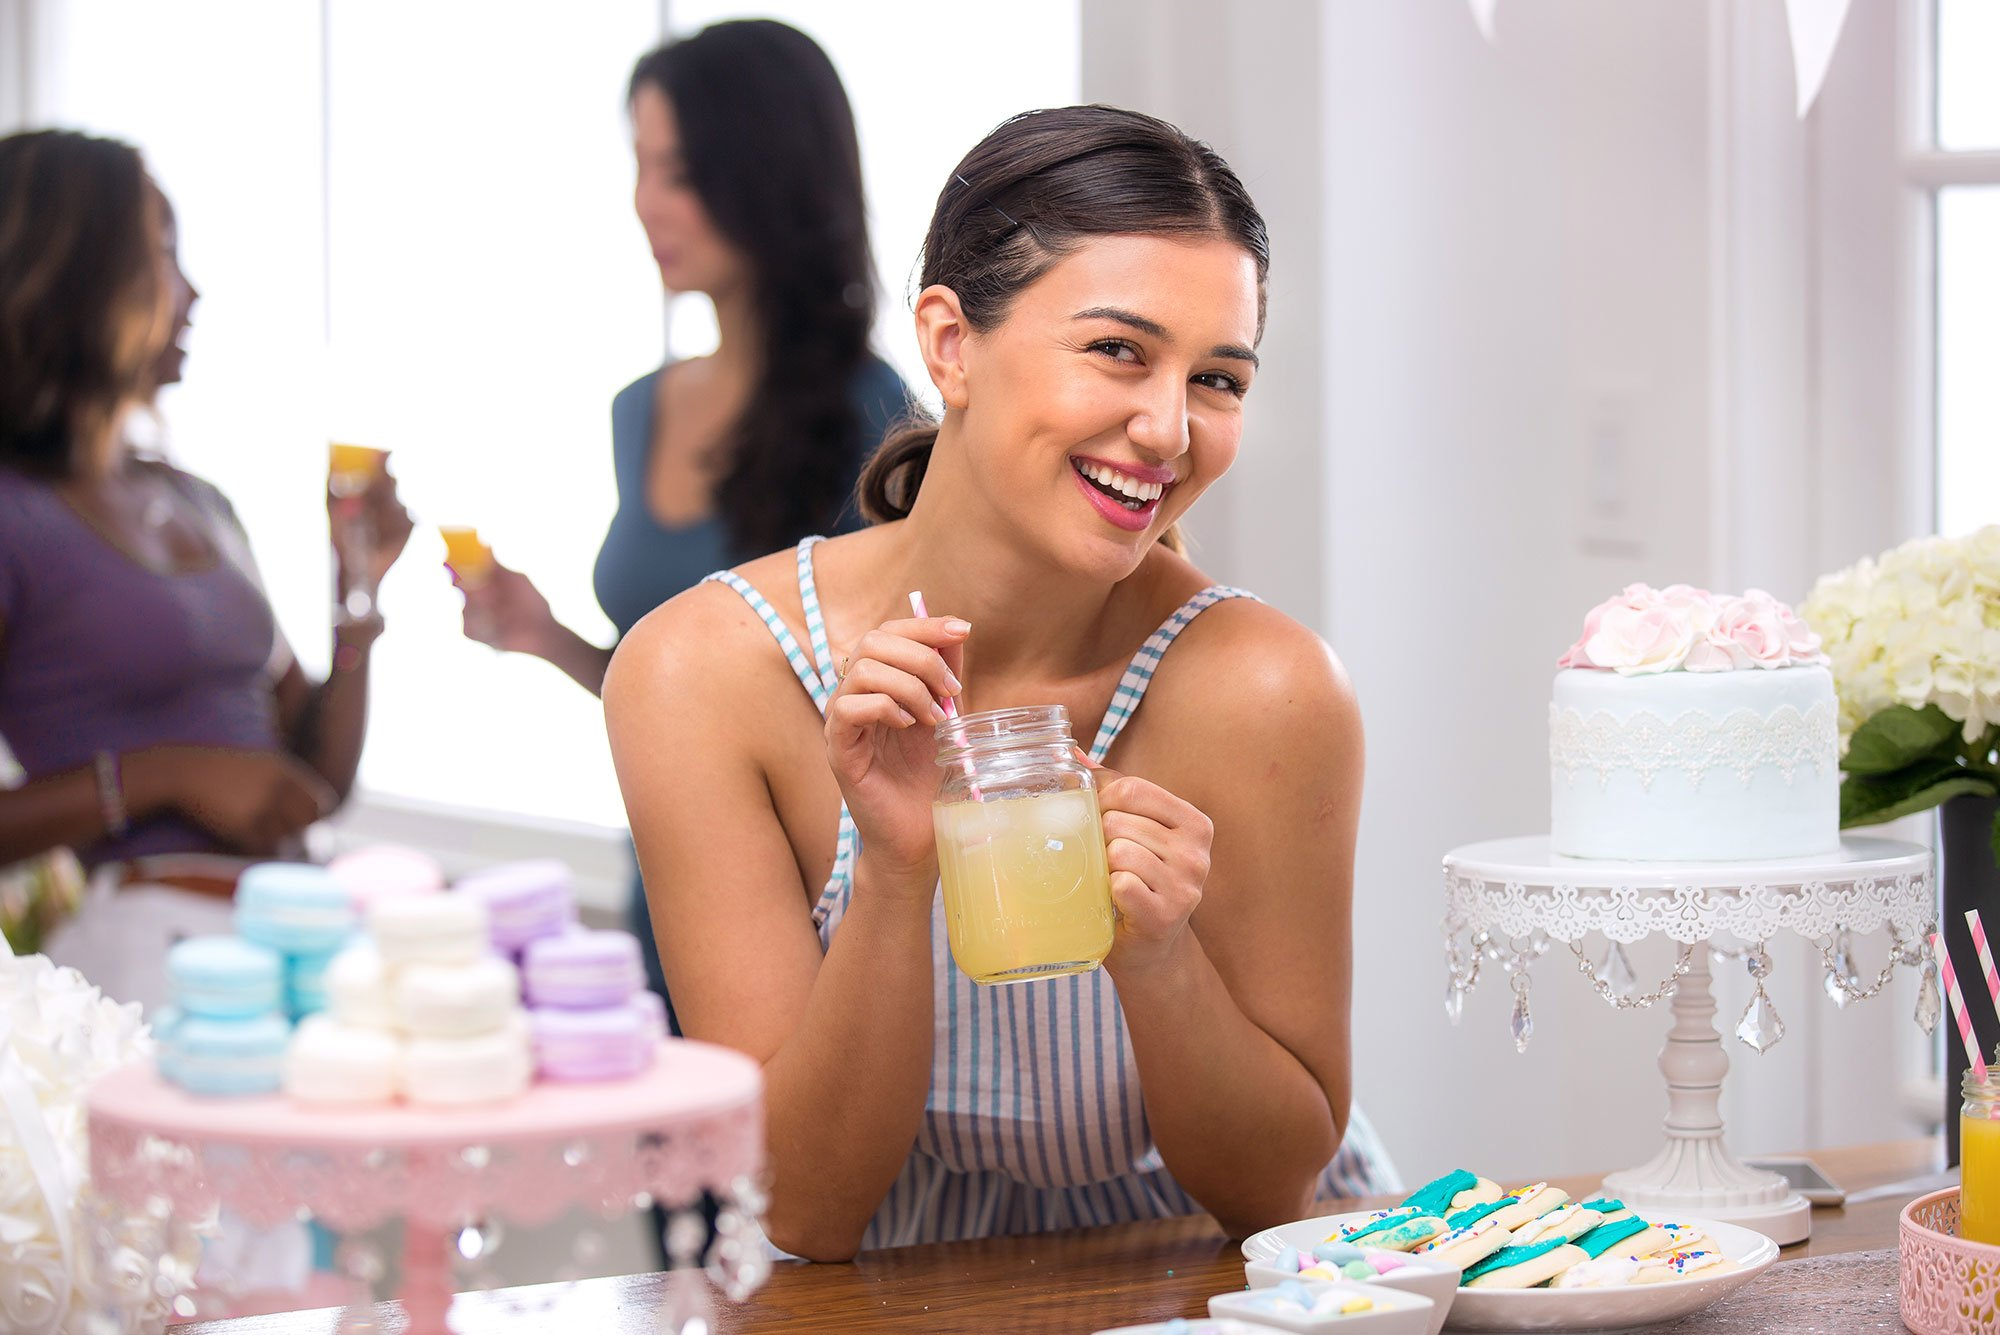 Woman having a drink at a bridal shower